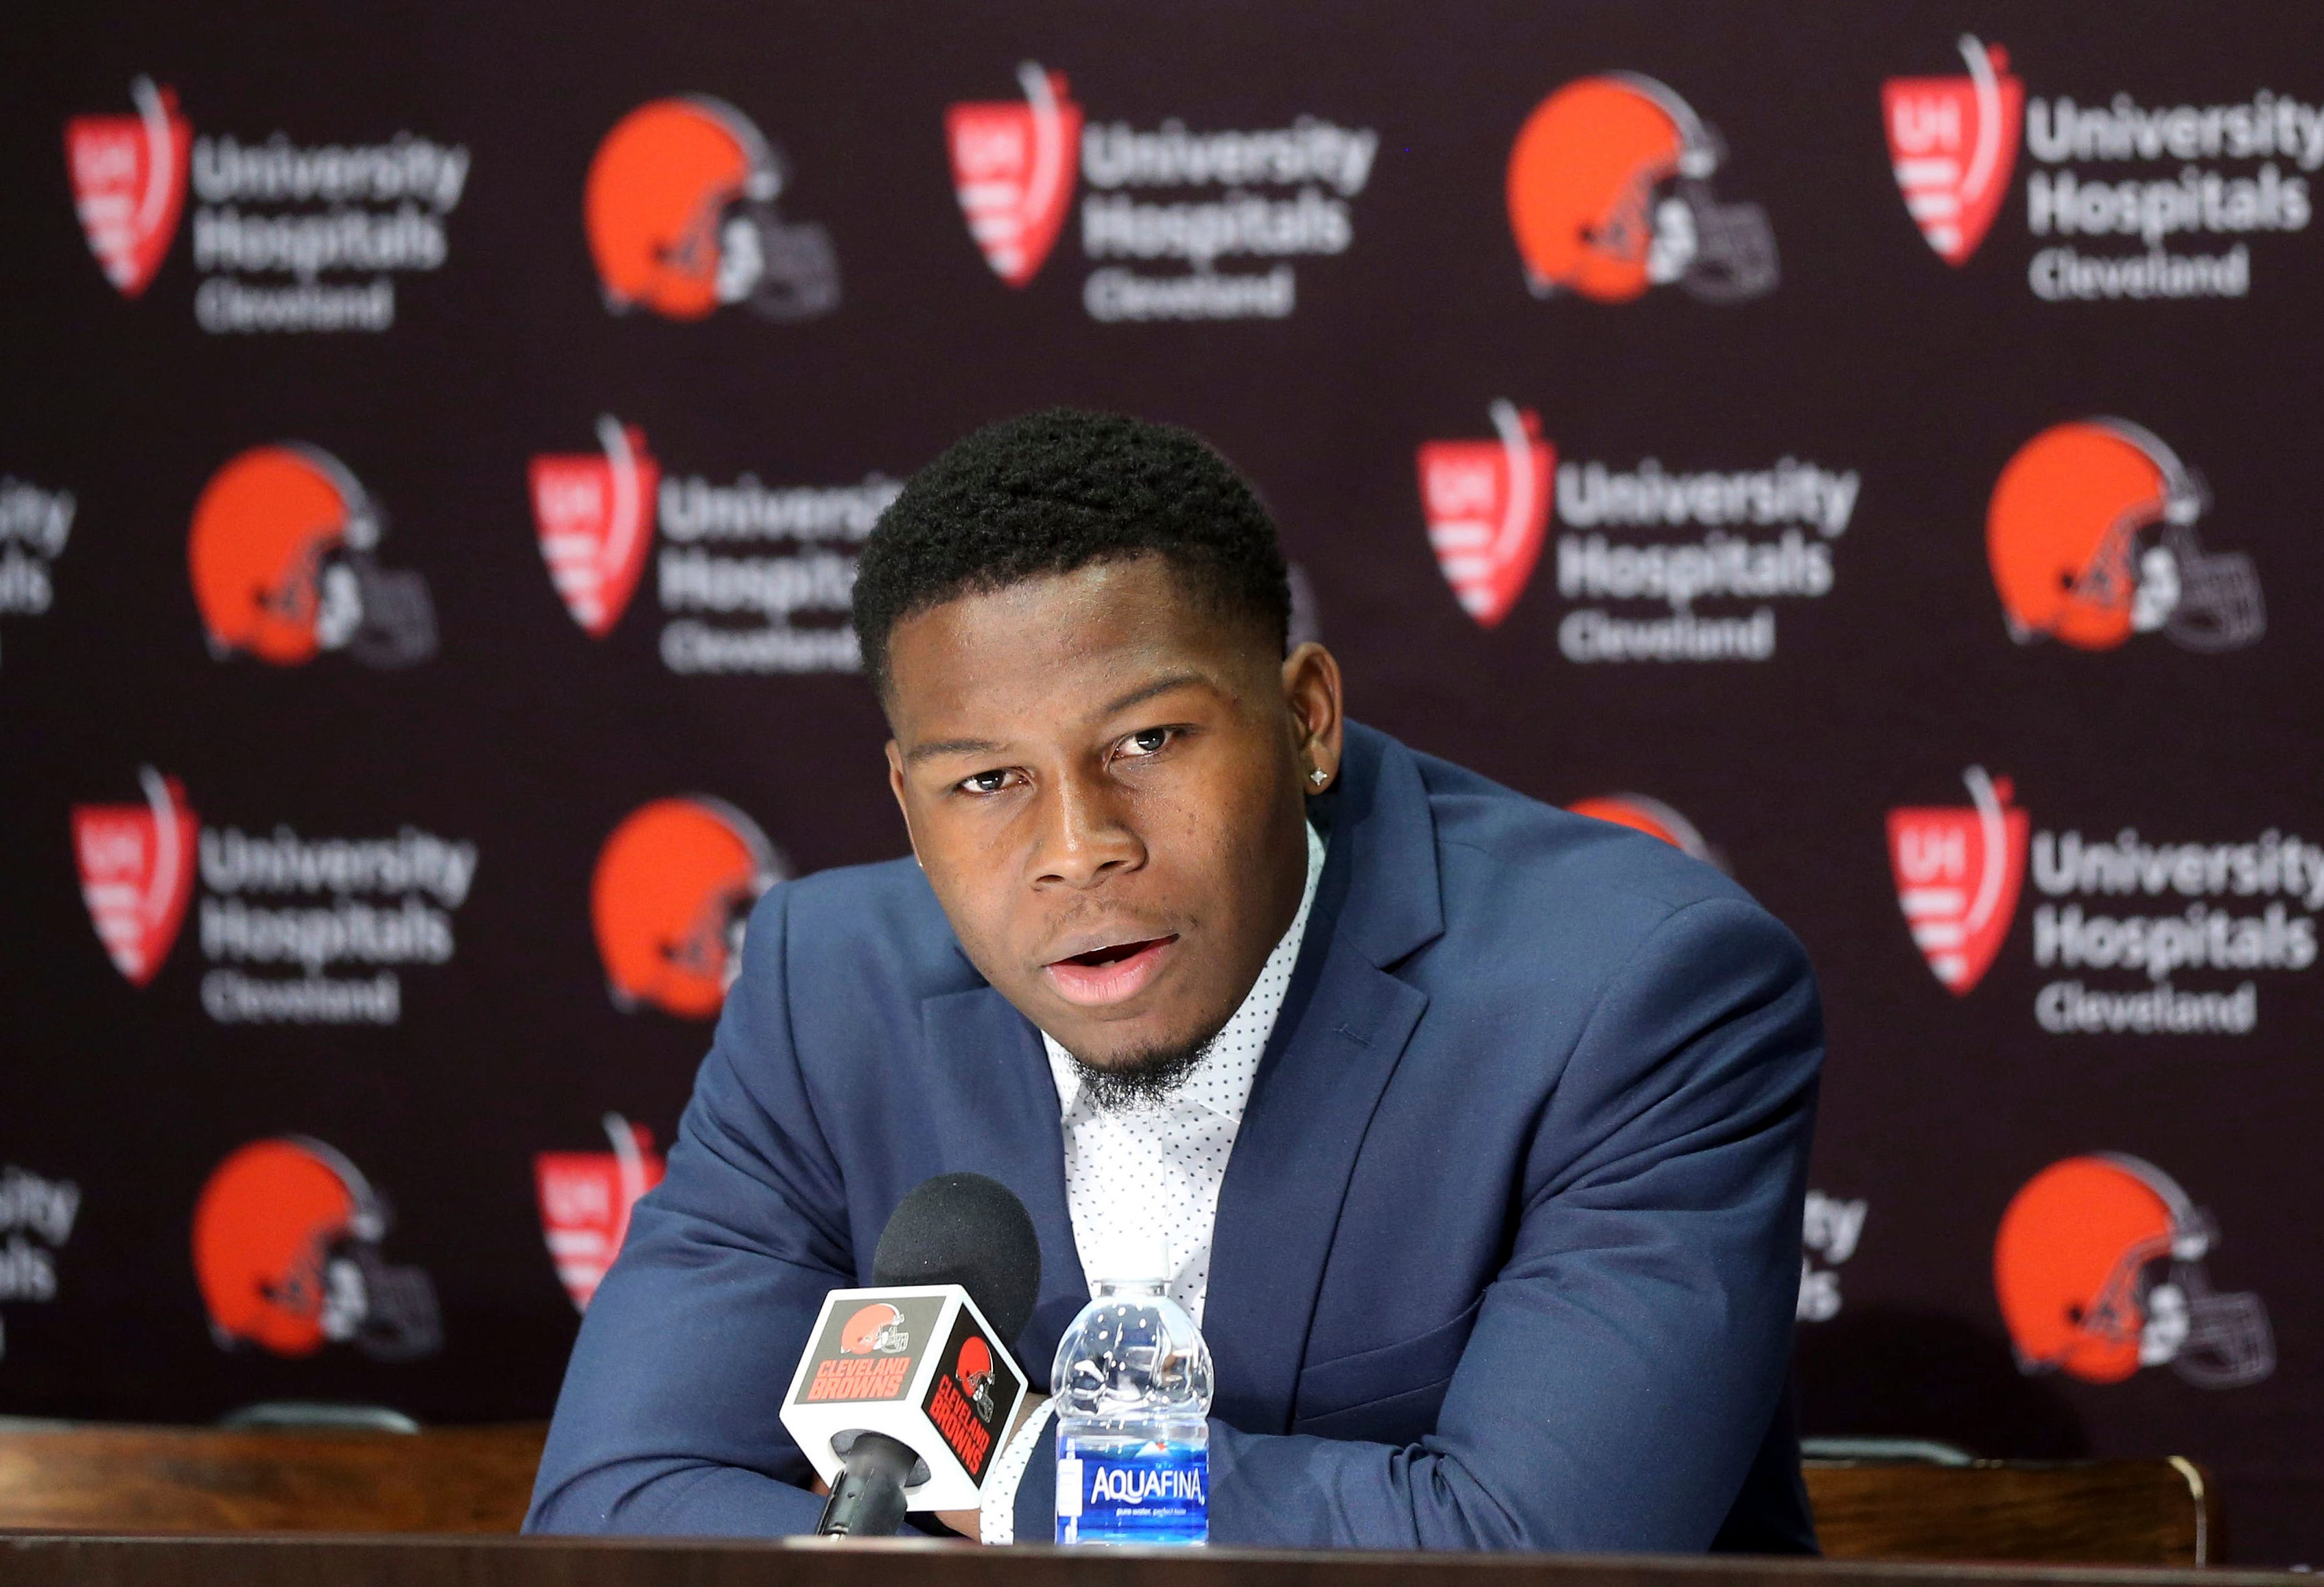 Browns cornerback Carrie inspired by James' school in Akron